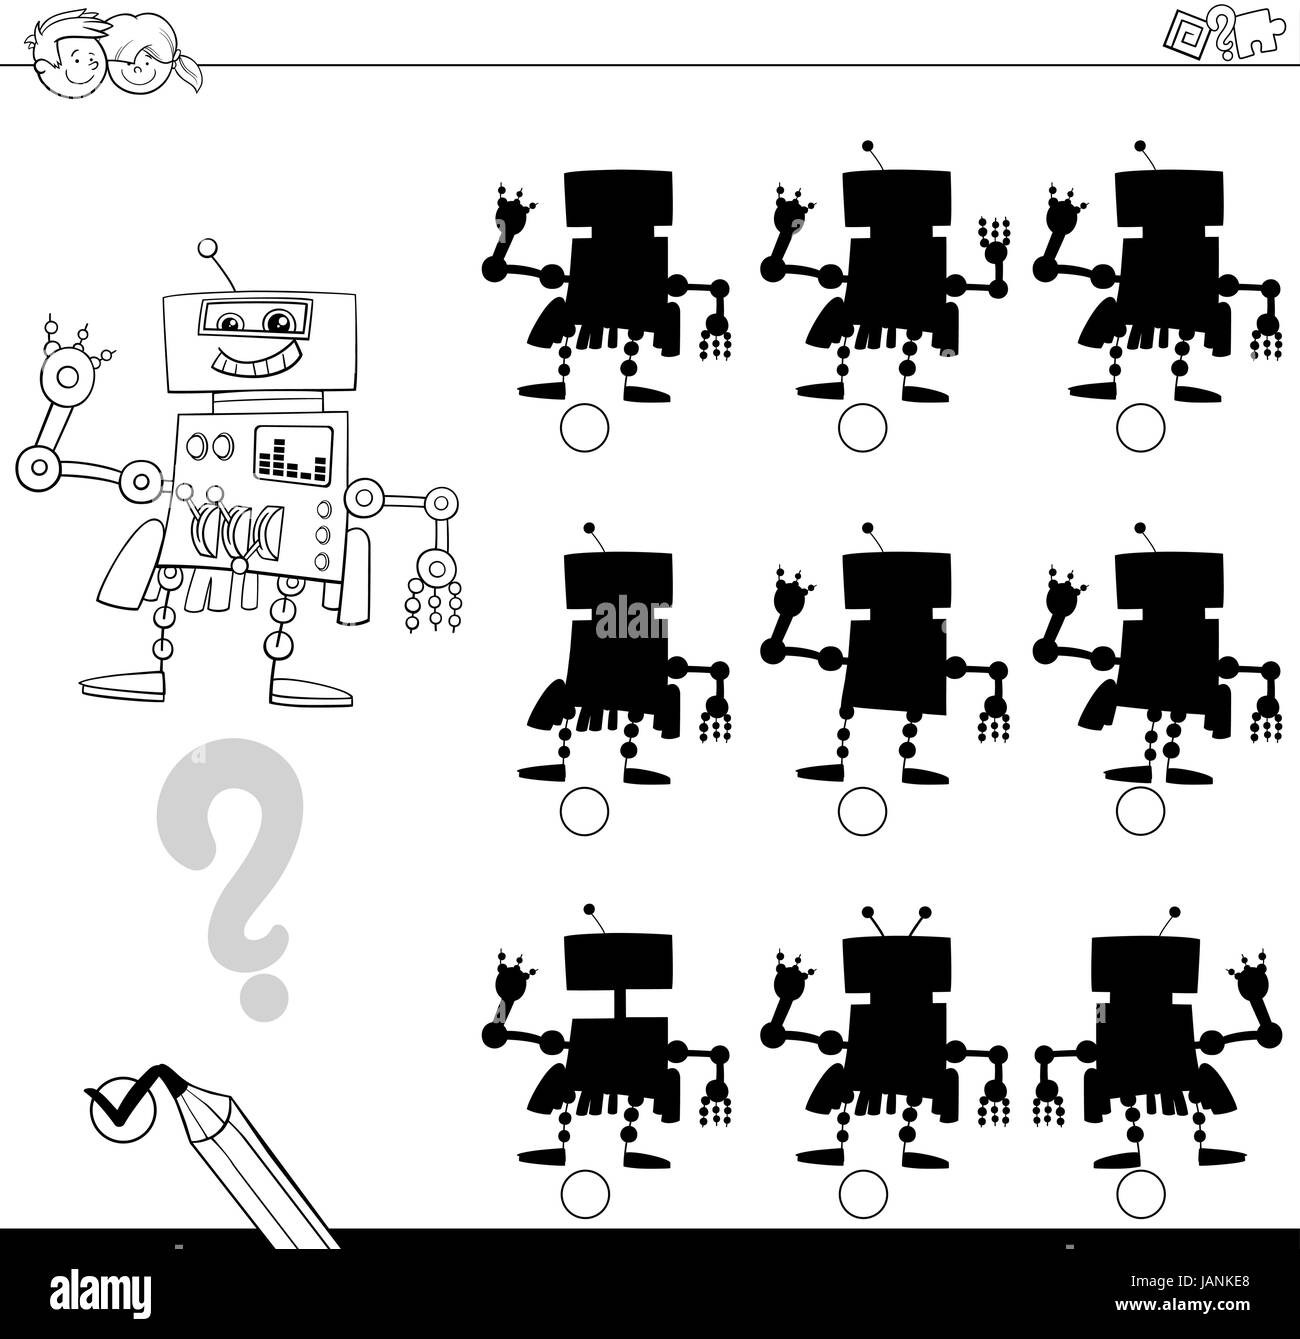 Match Shadow Puzzle Worksheet Kids Stockfotos & Match Shadow Puzzle ...